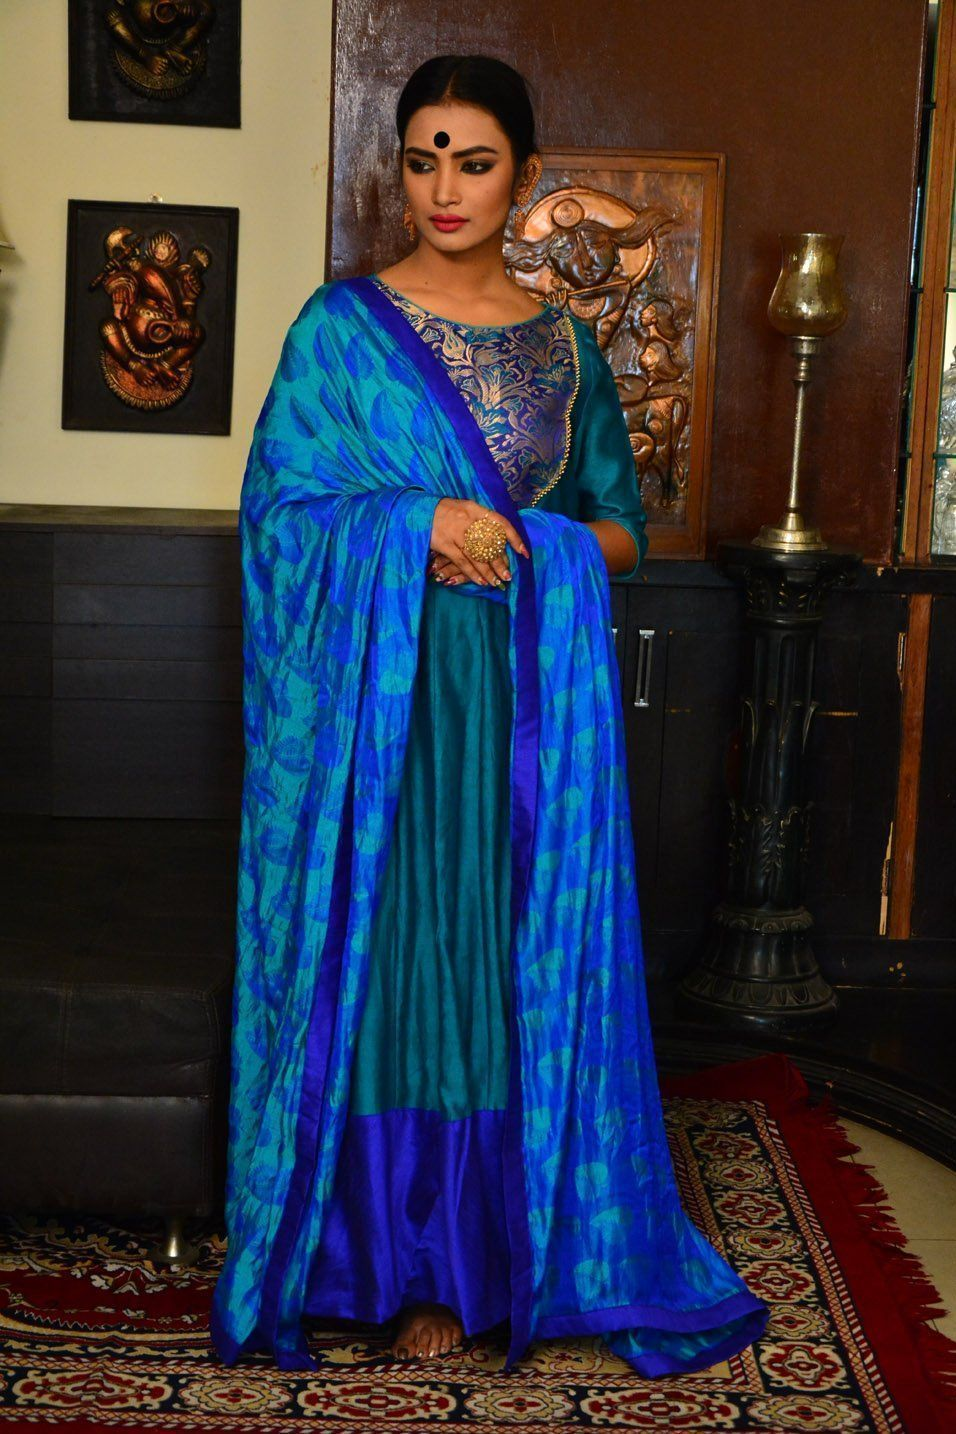 Royal Blue and Turquoise Blue Handcrafted Chanderi Anarkali Set